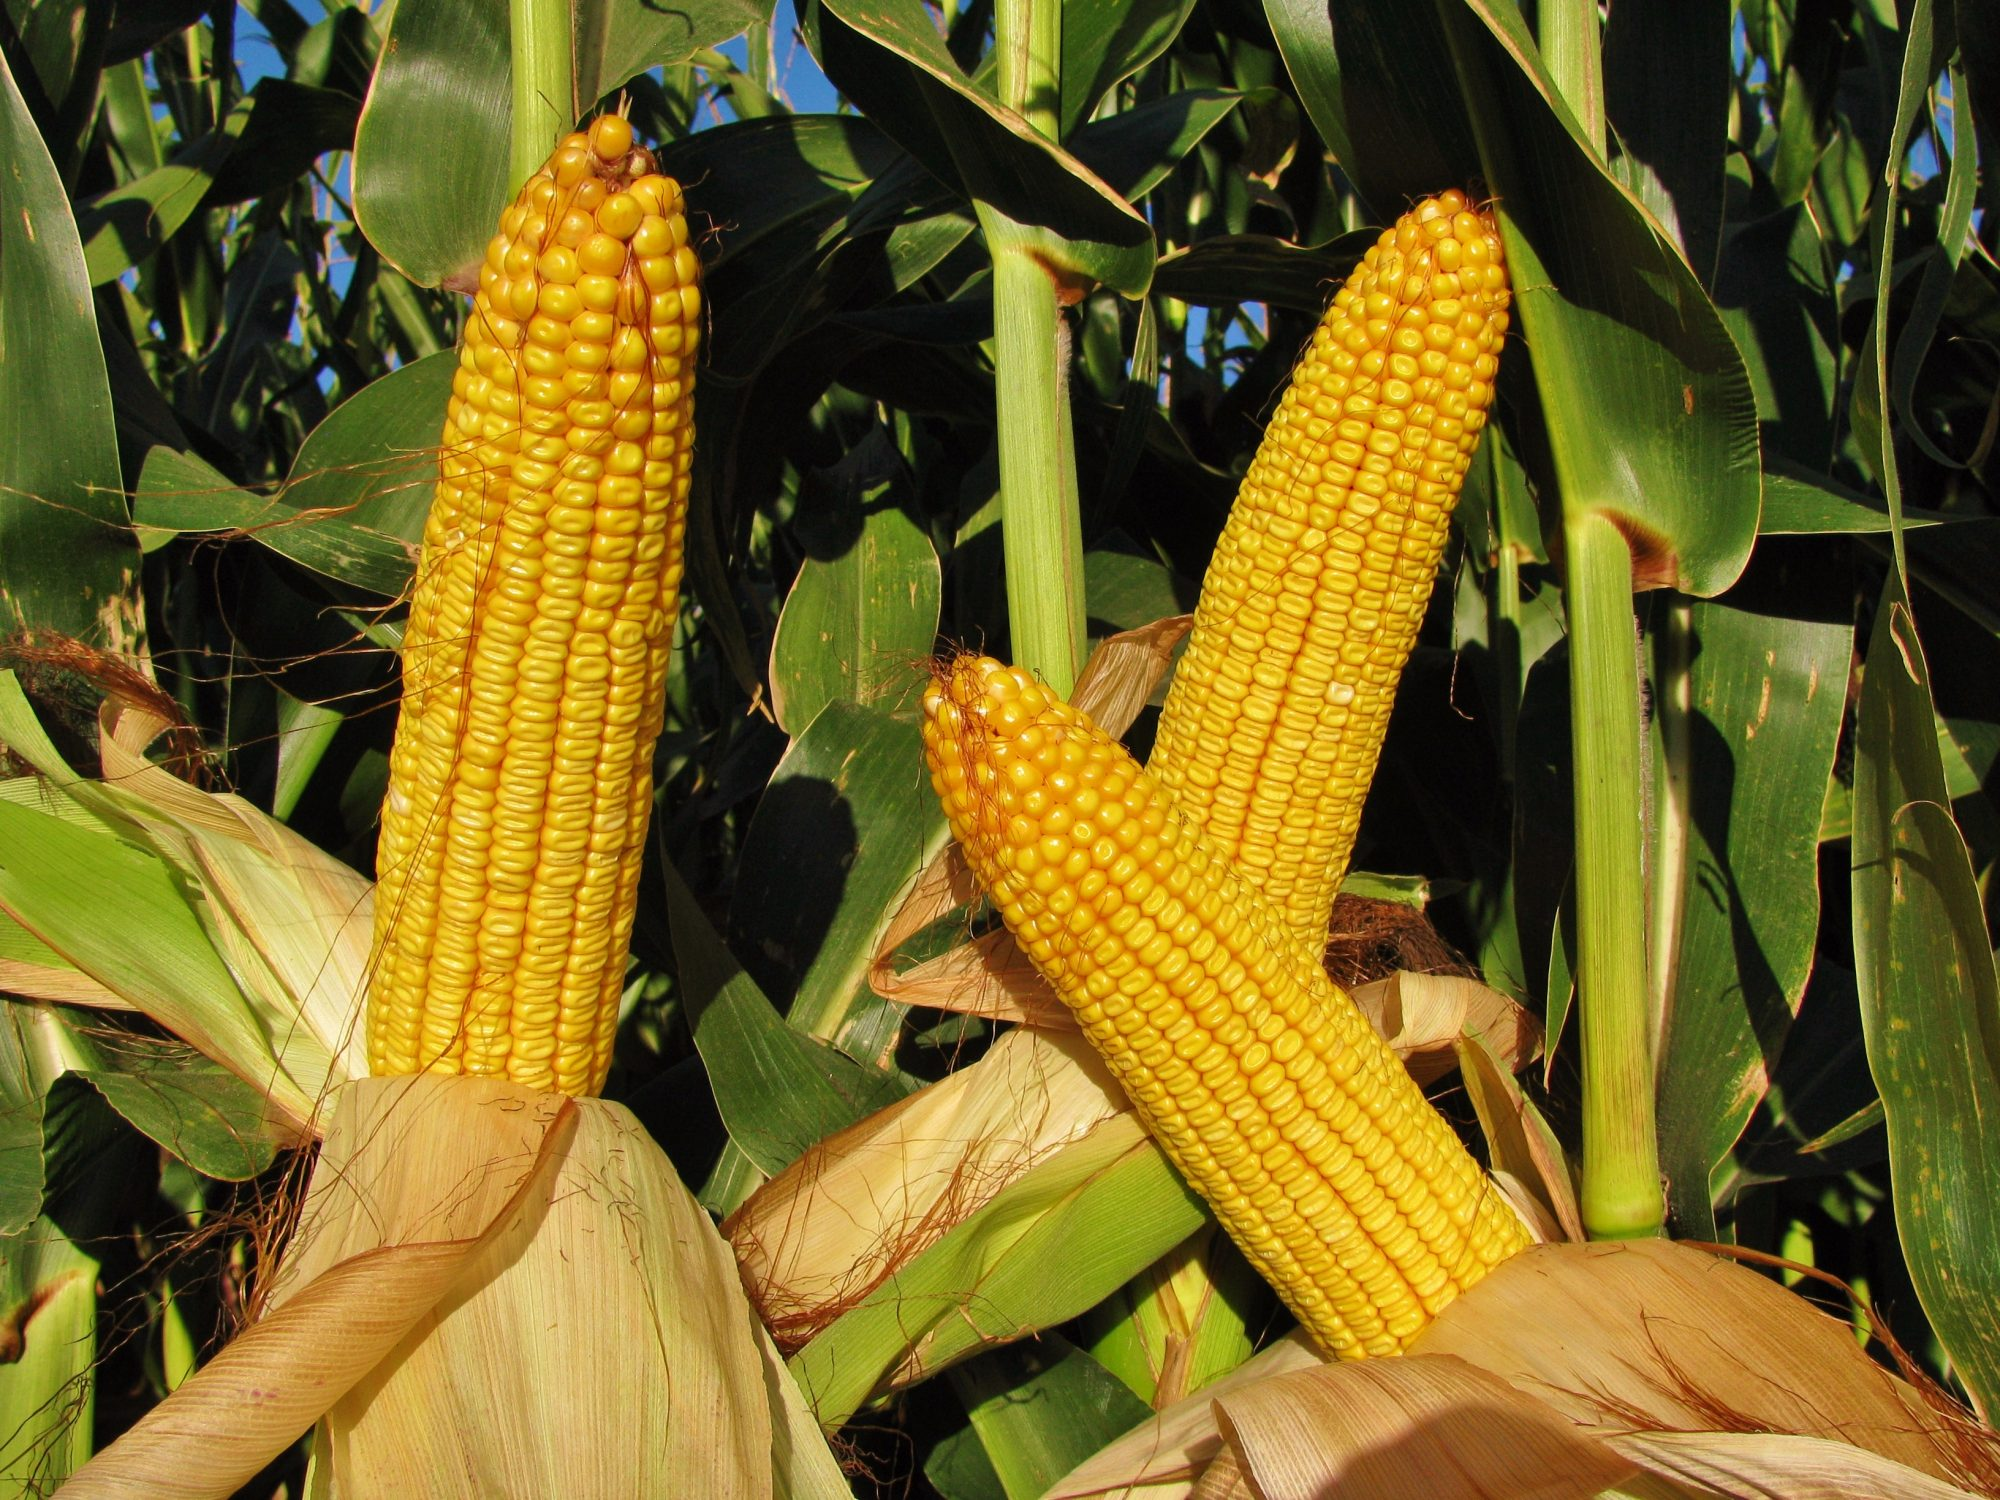 difference in cow corn and sweet corn